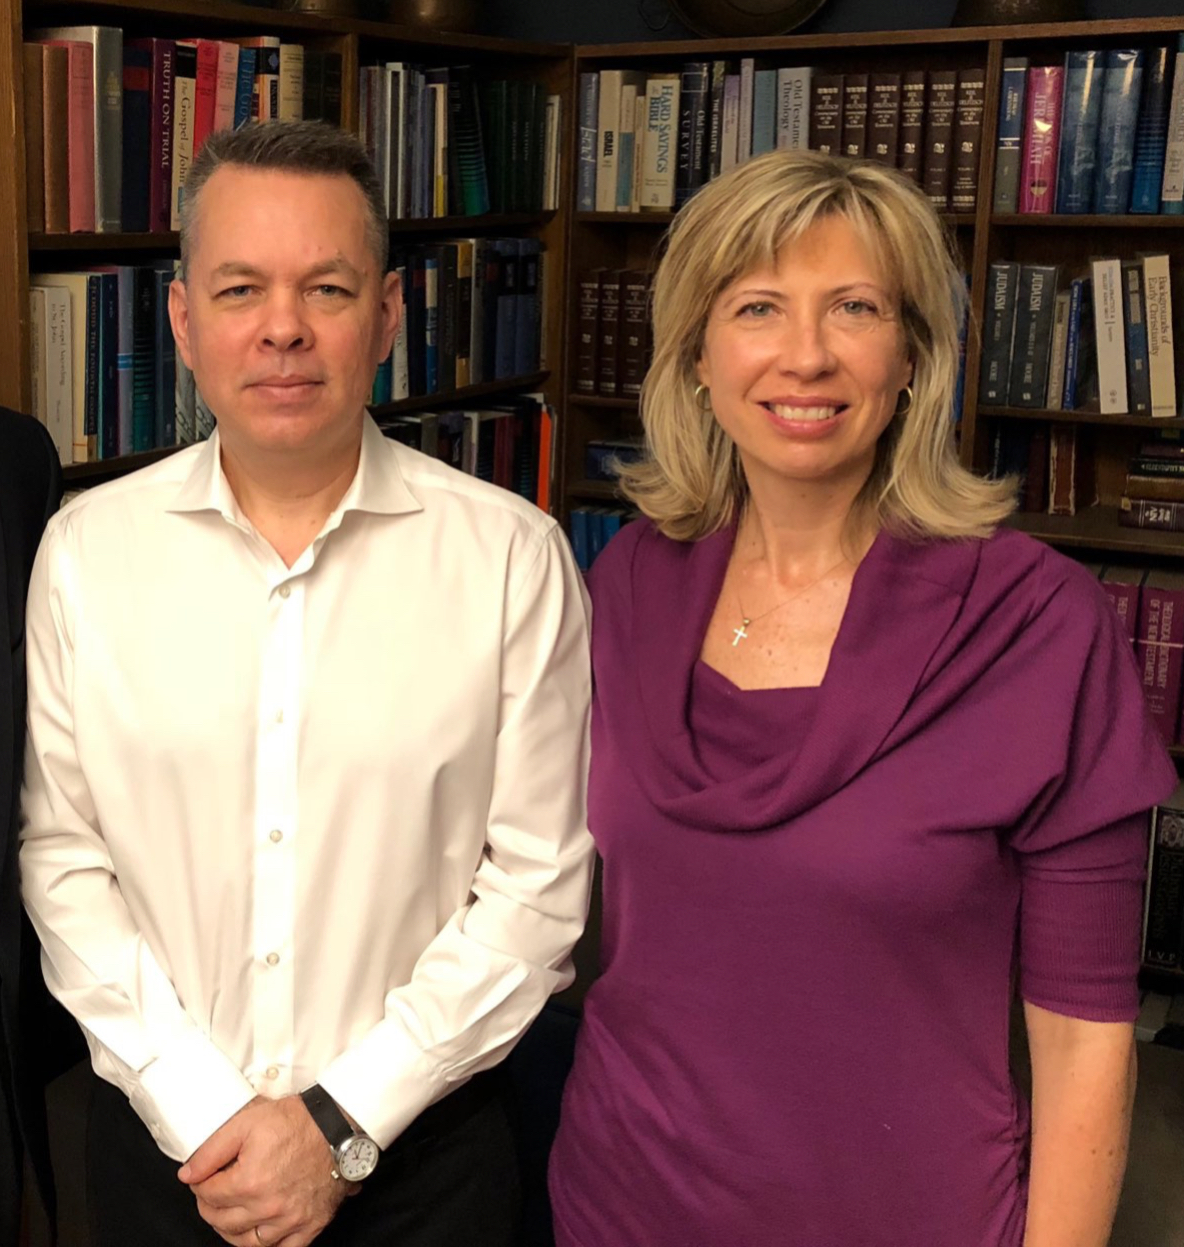 TURKEY: Andrew Brunson released